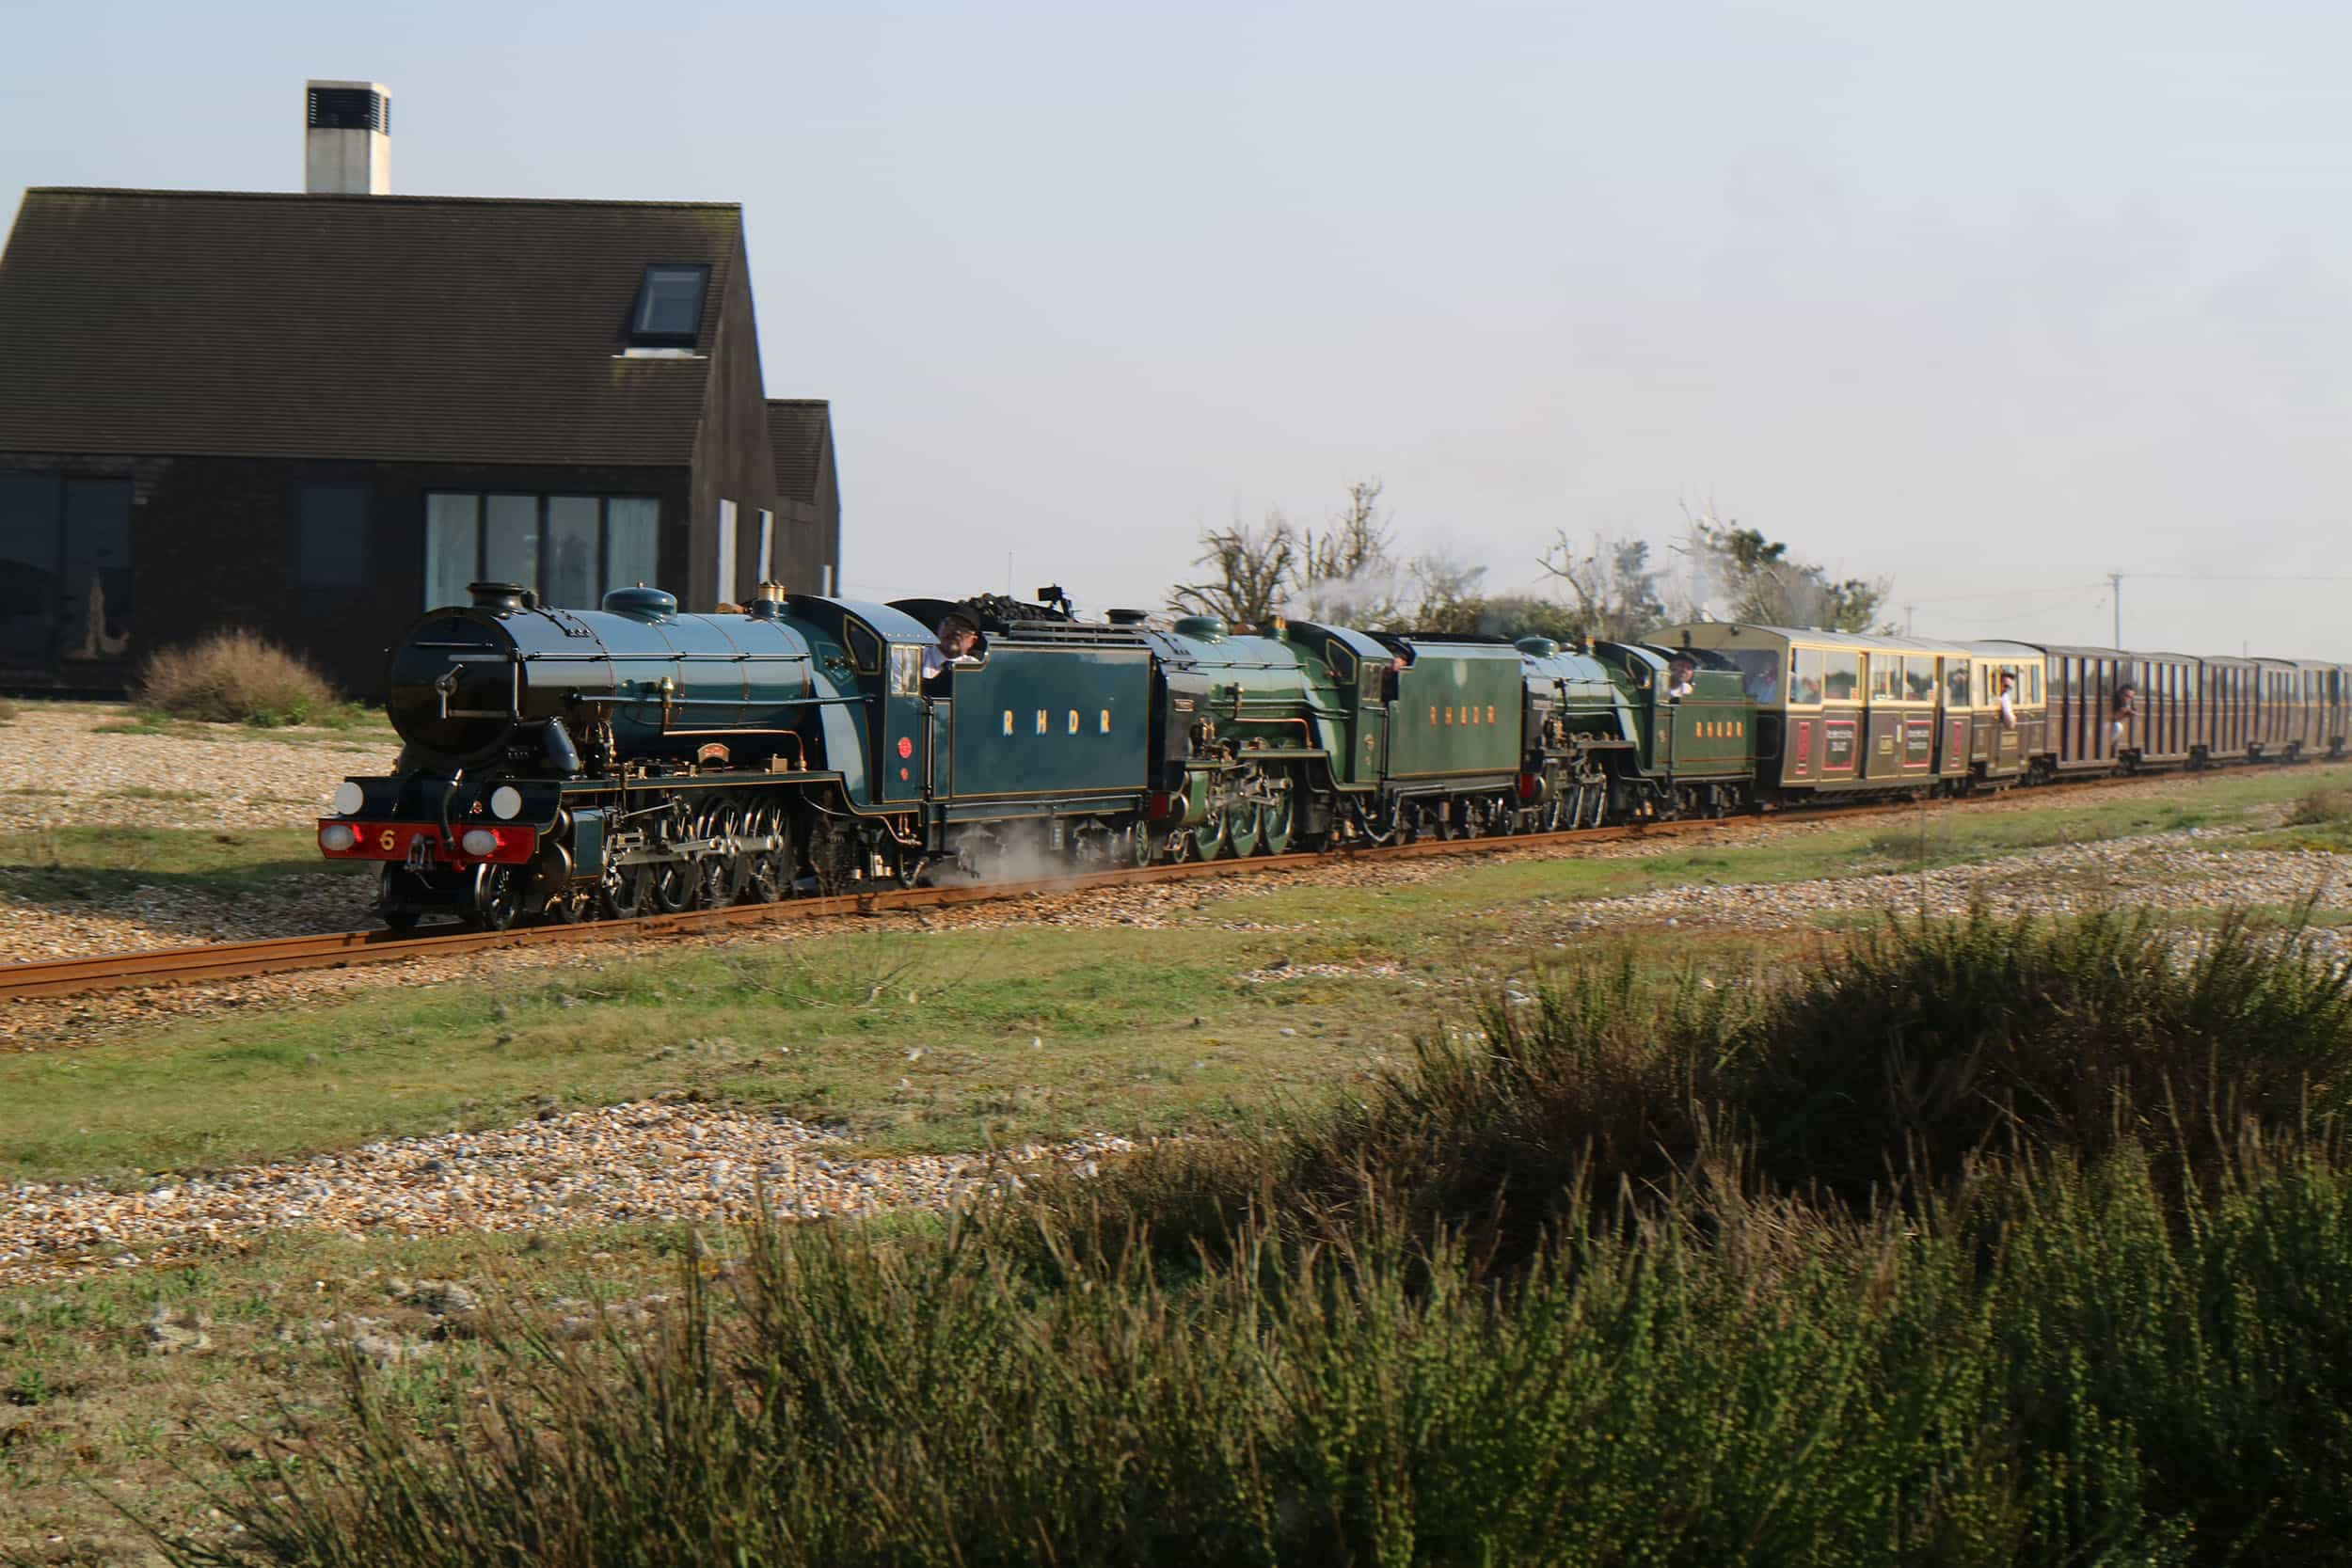 Heritage coaches at Romney, Hythe & Dymchurch Railway